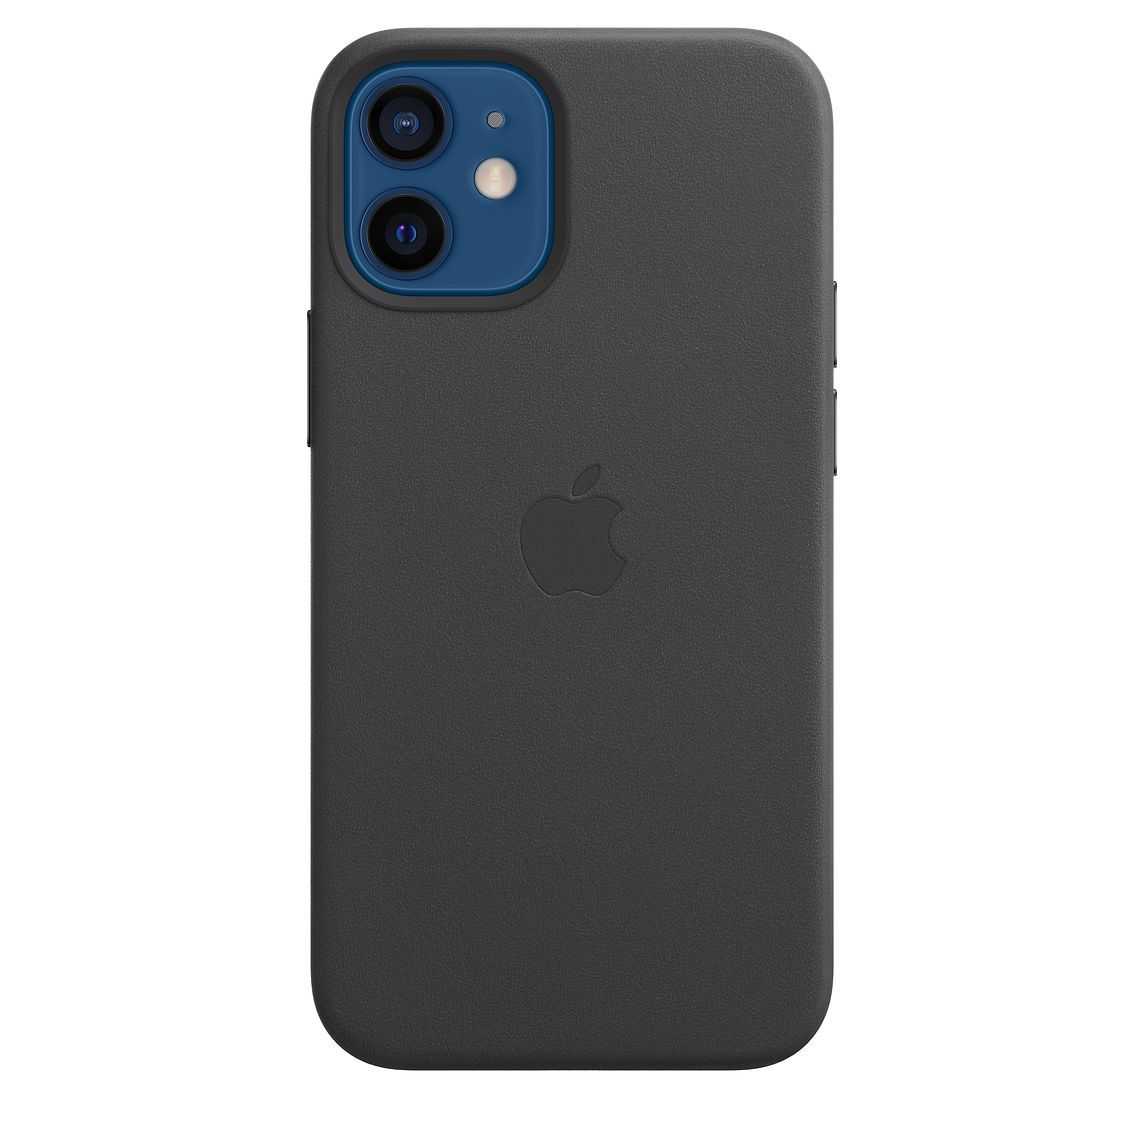 Apple iPhone 12 mini Leather Case with MagSafe Black